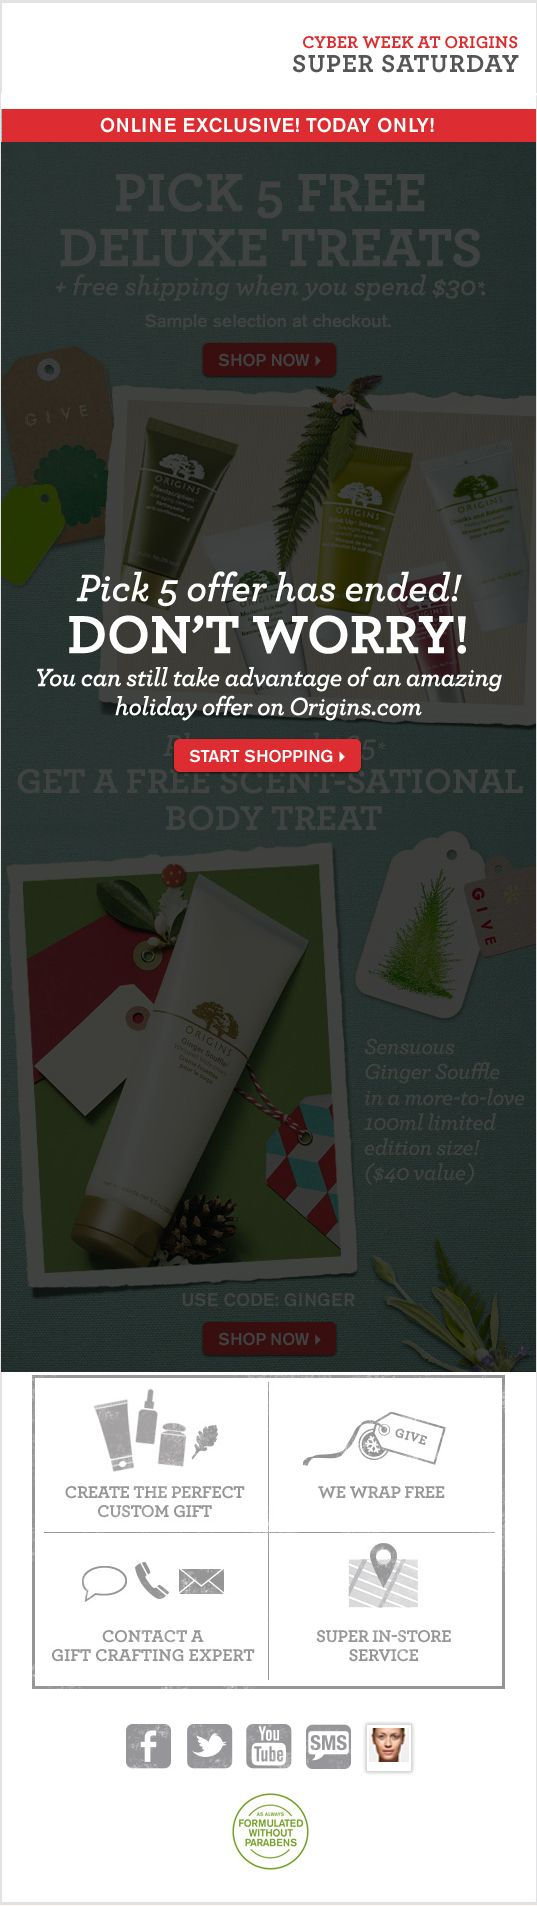 In this email, Origins included a countdown clock and time-sensitive creative to promote a Cyber Week sale. Once the sale ended, the email displayed an alternate image promoting an alternate holiday offer.